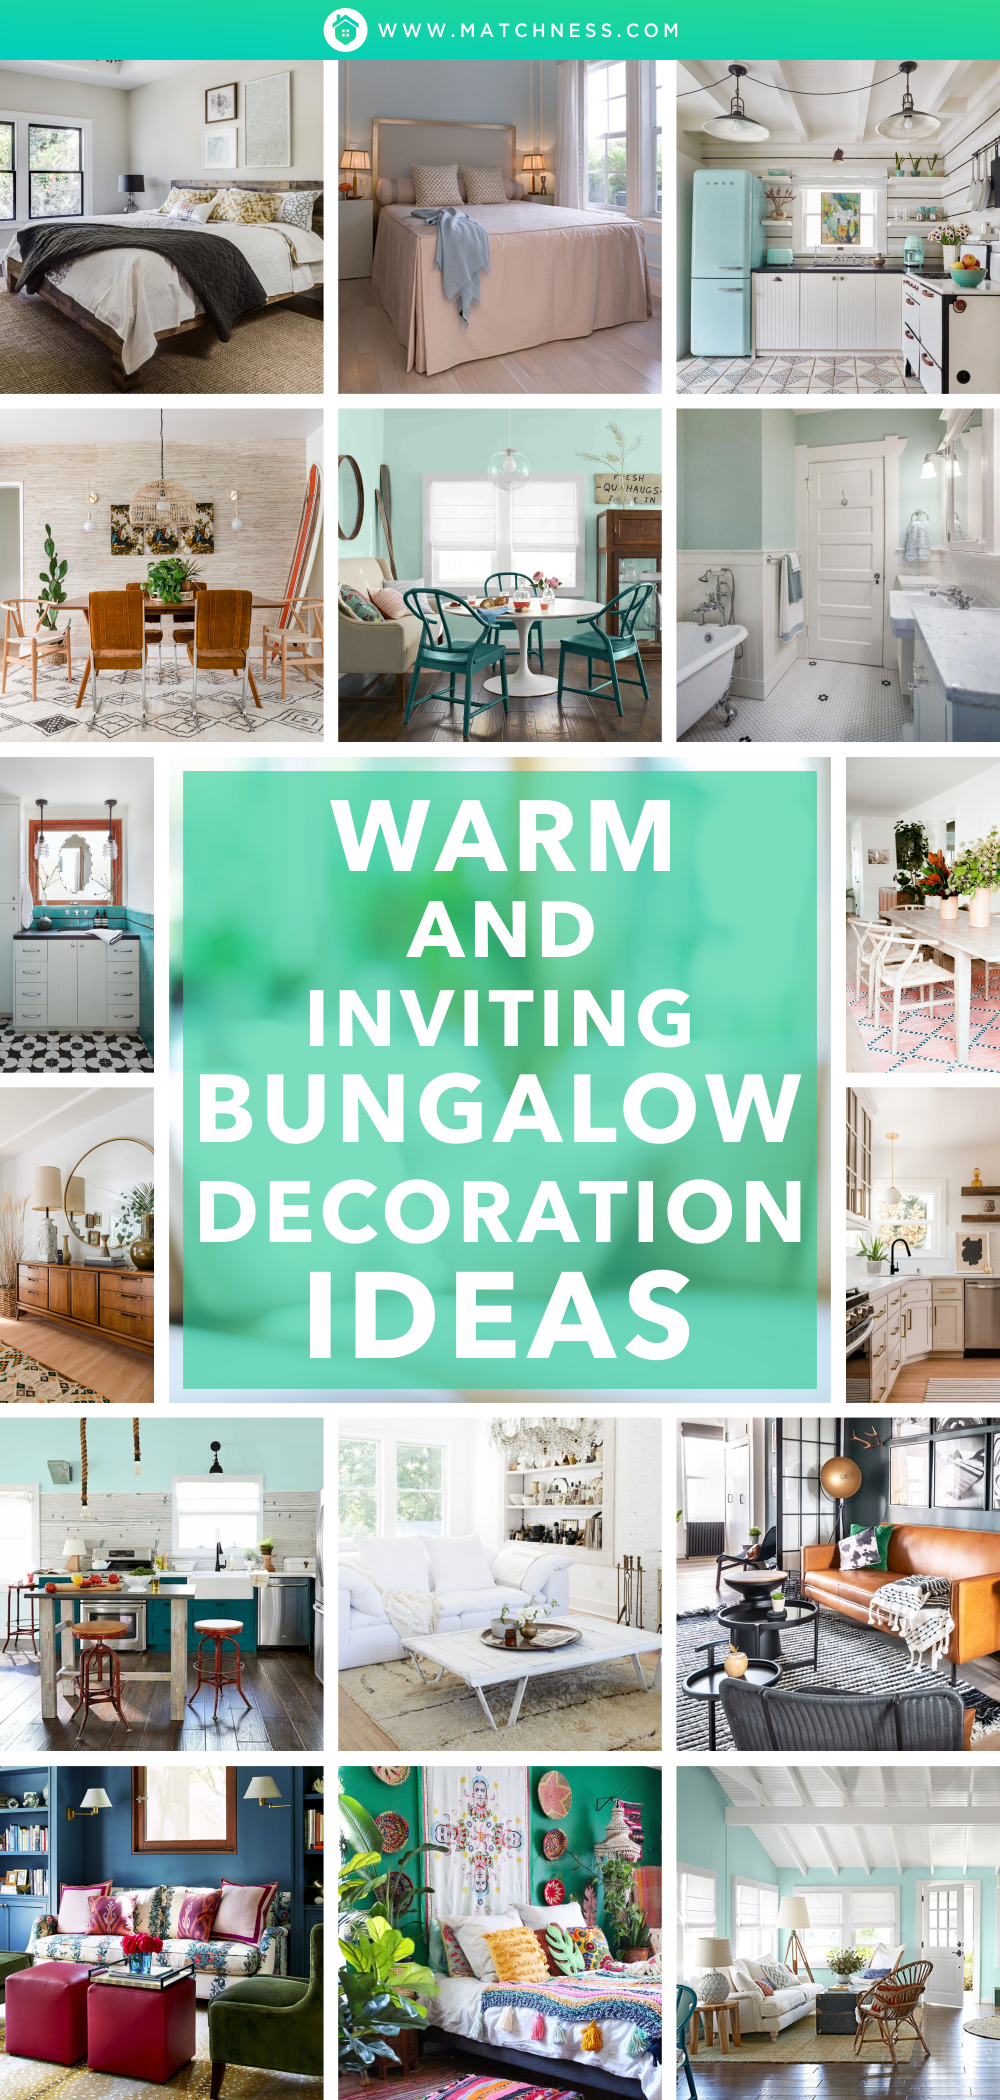 Warm-and-inviting-bungalow-decoration-ideas1